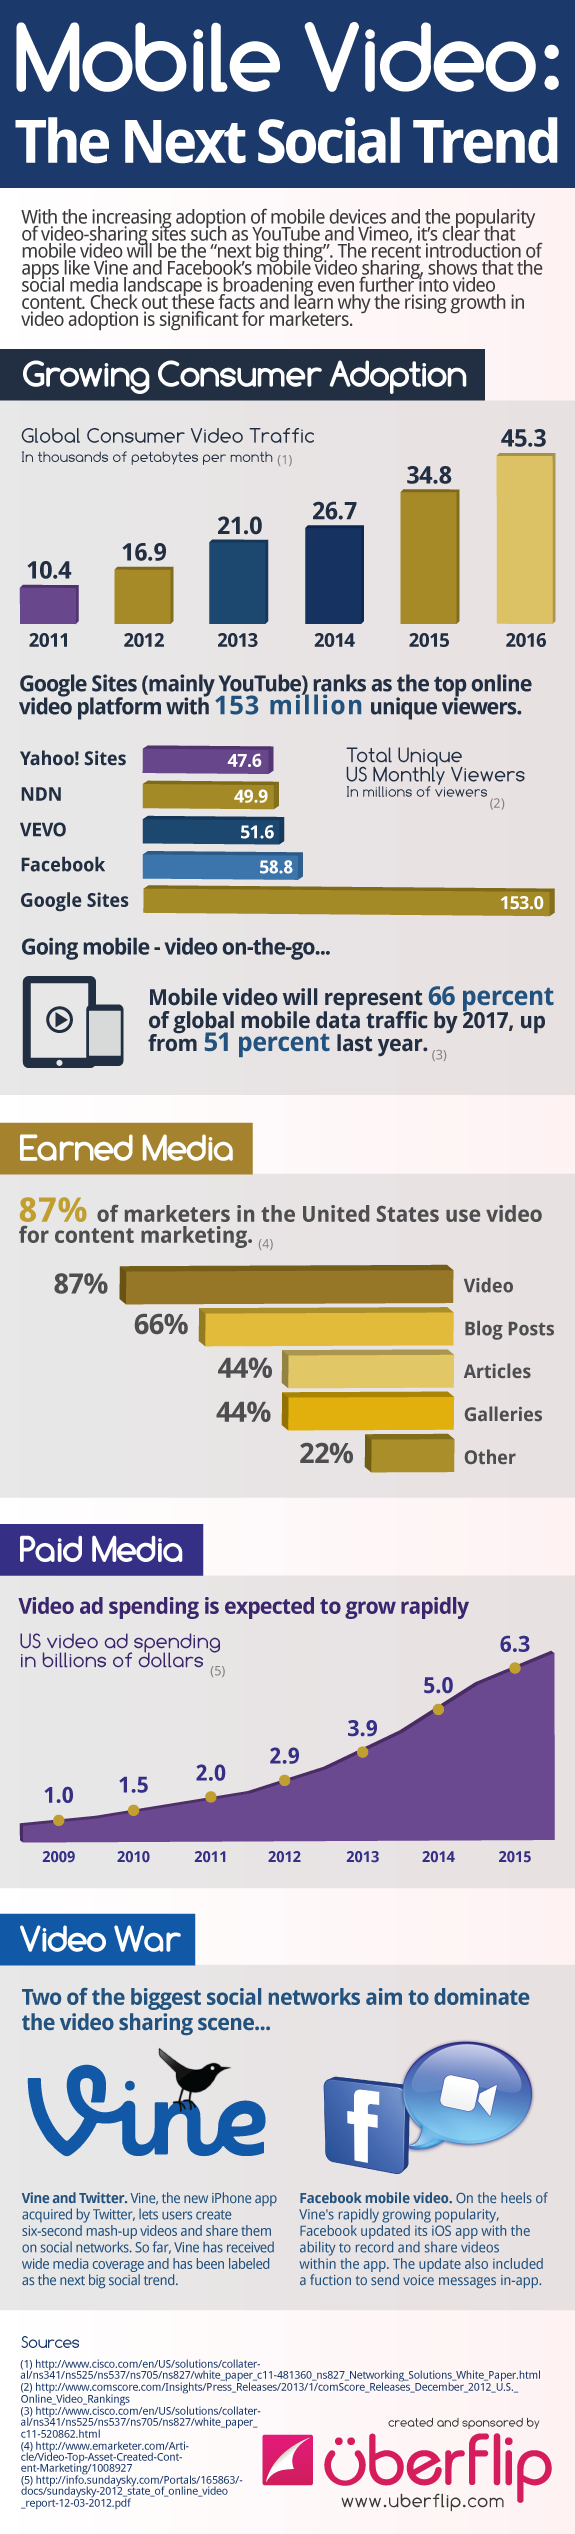 Mobile Video Future-Infographic